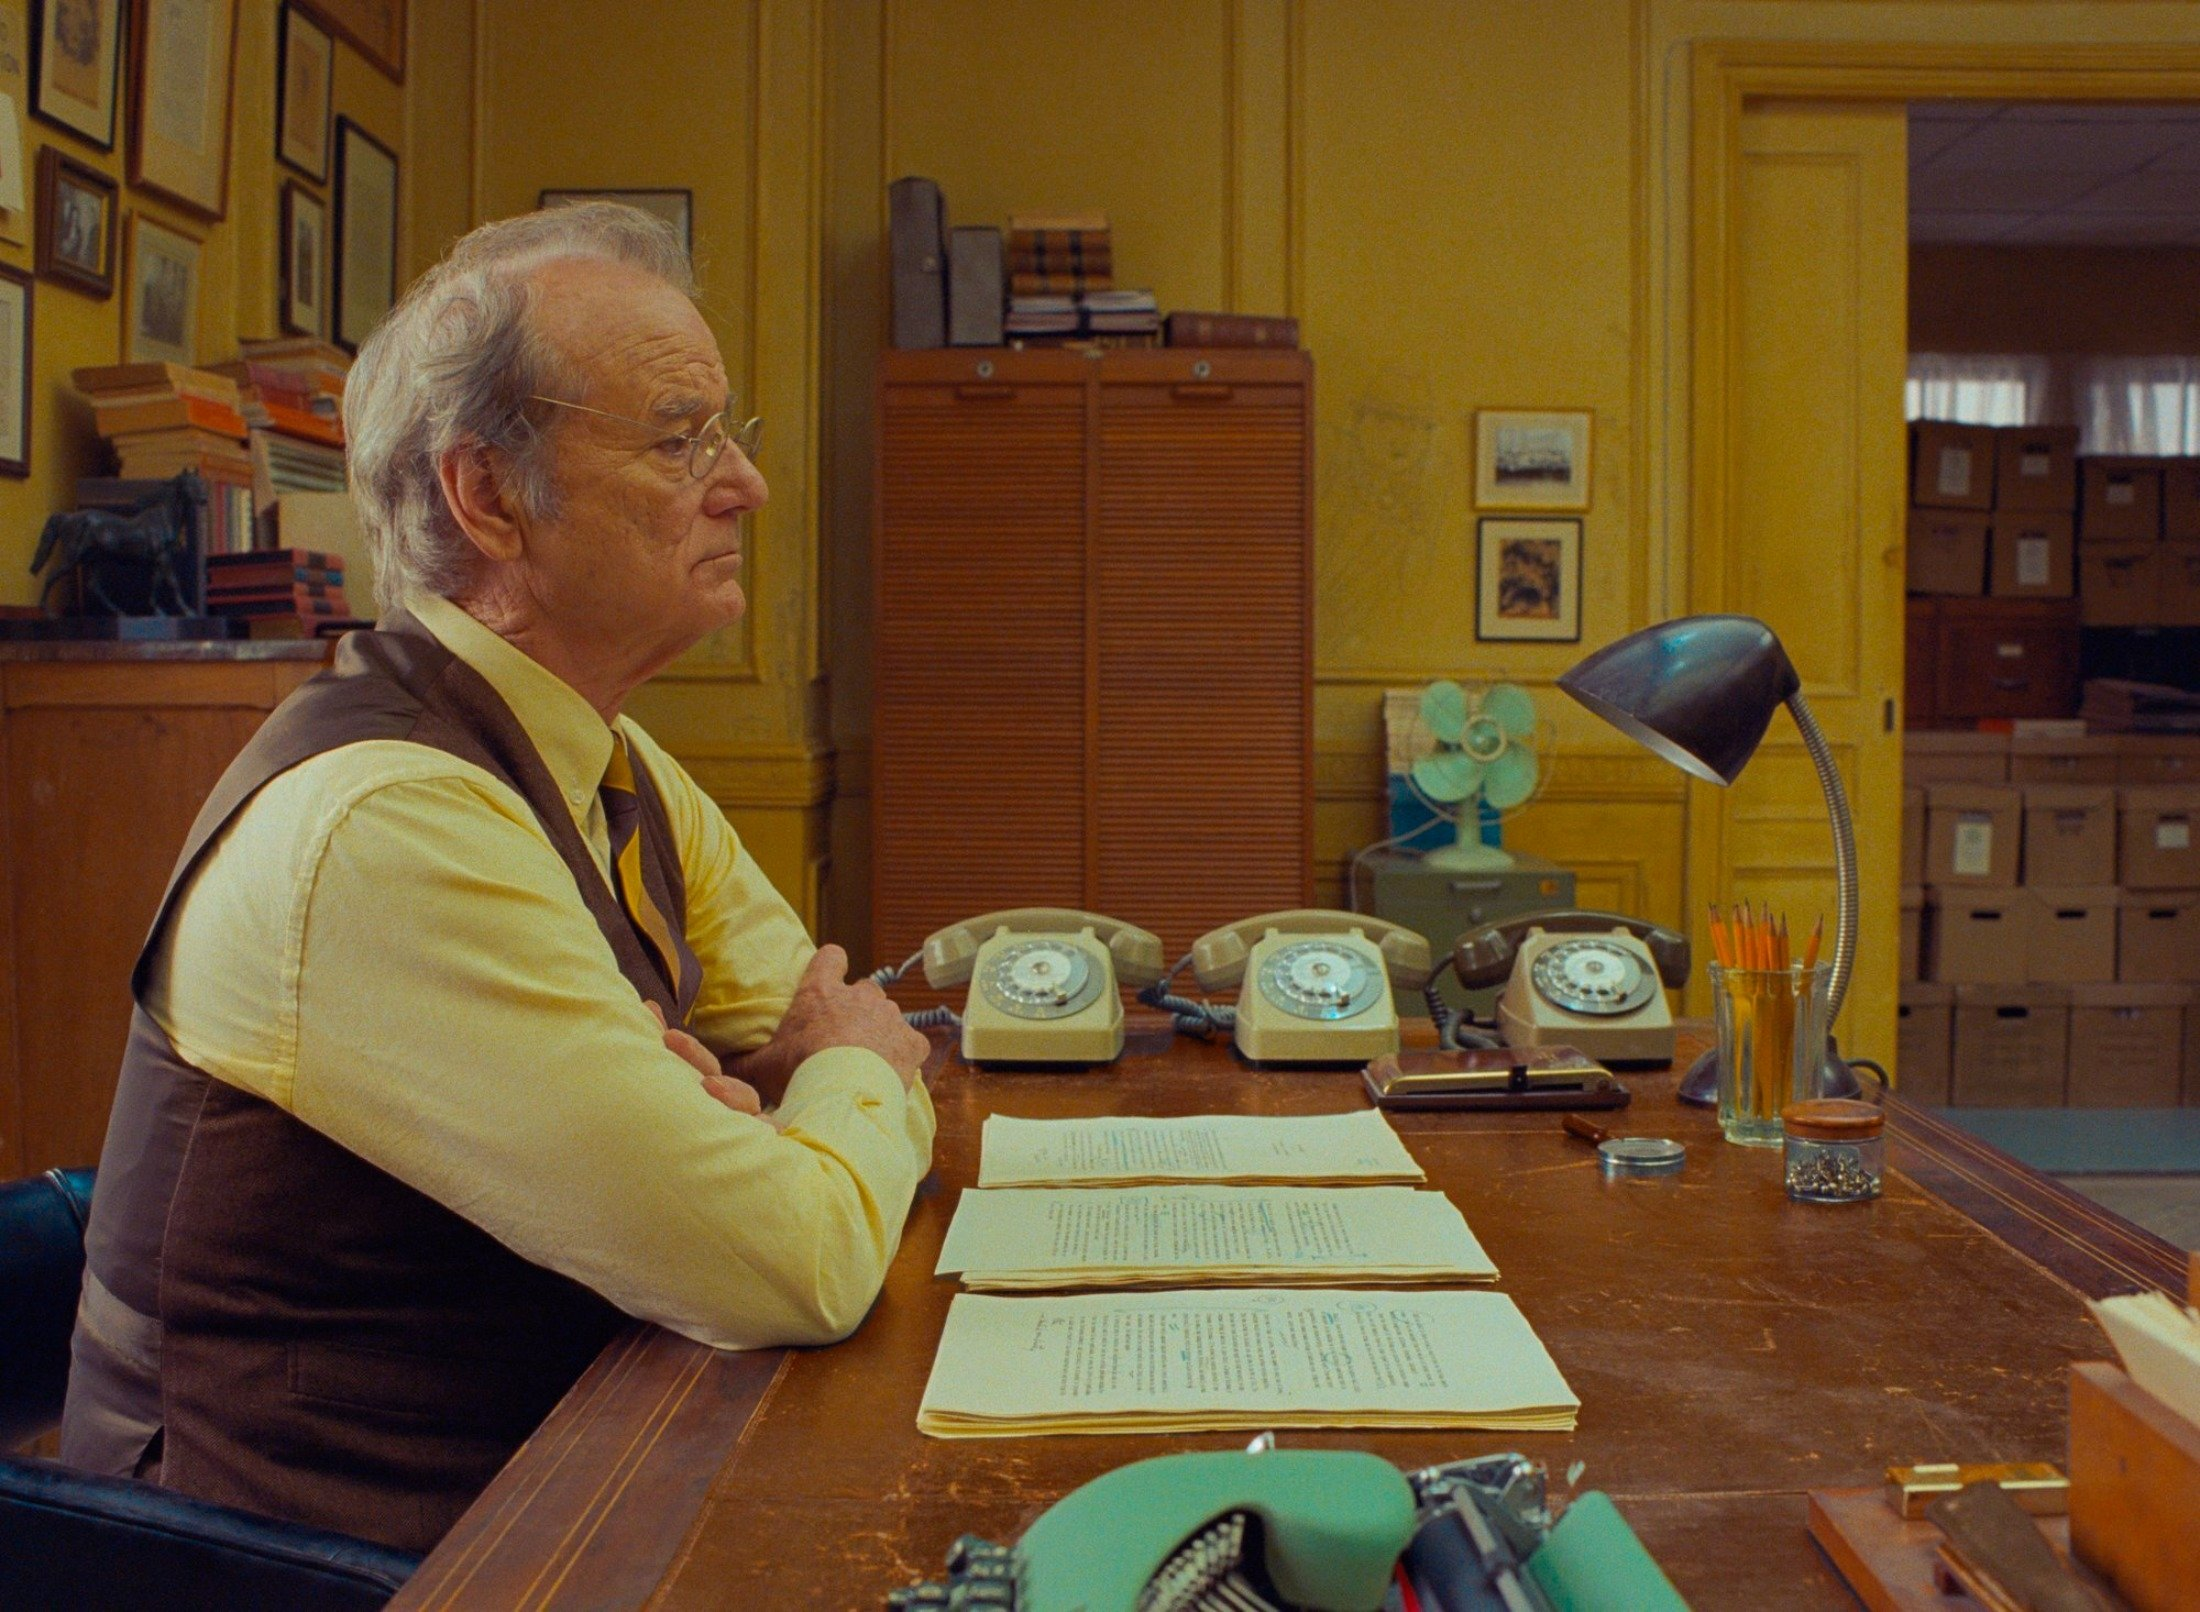 Bill Murray sits behind a desk in a scene from Wes Anderson's film 'The French Dispatch.' (Searchlight Pictures via AP)